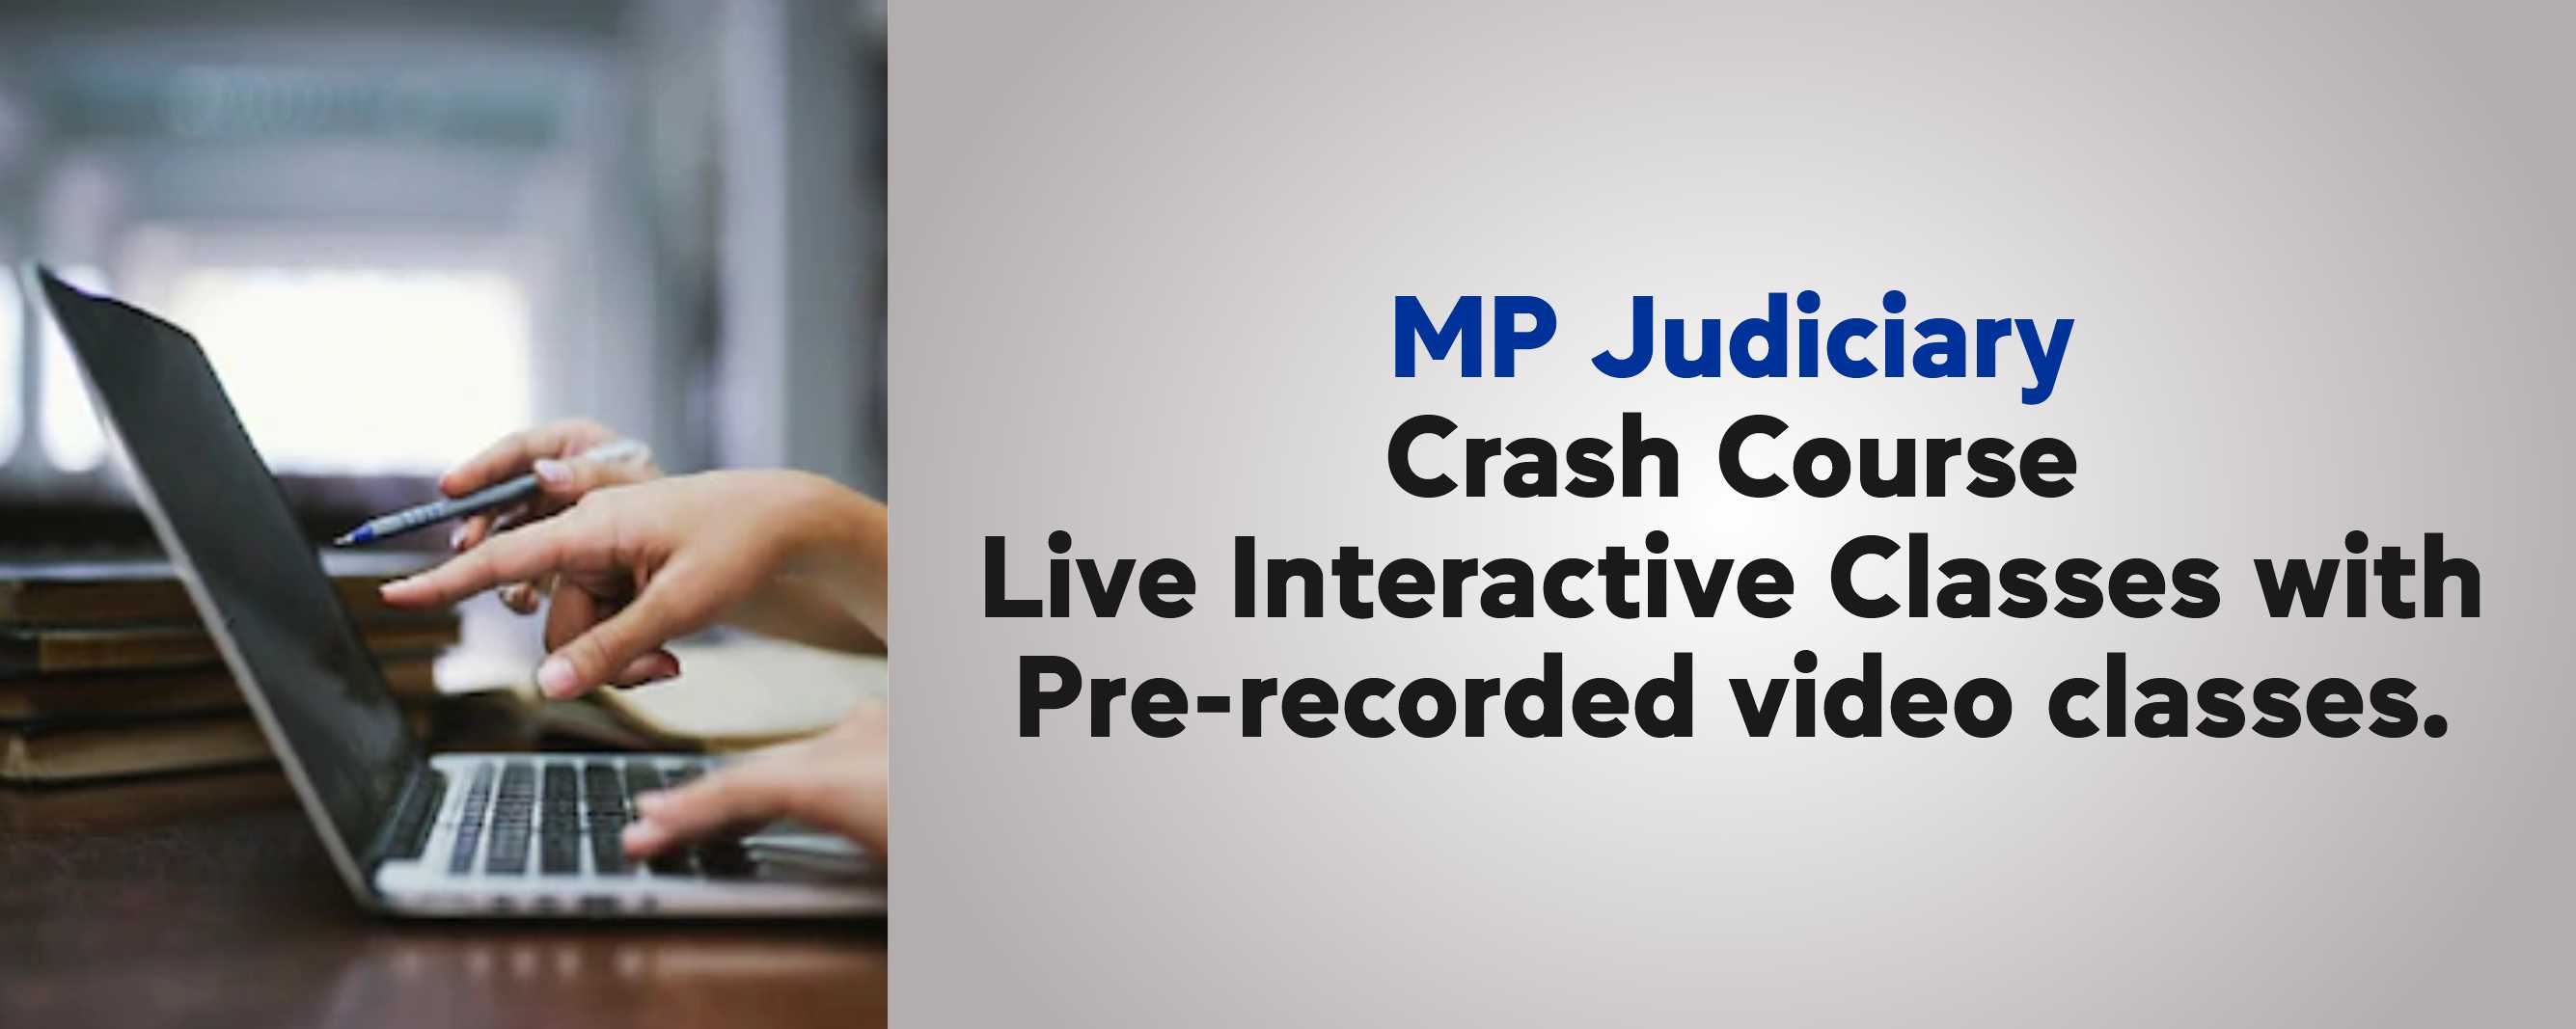 MP JUDICIARY PRELIMS CRASH COURSE